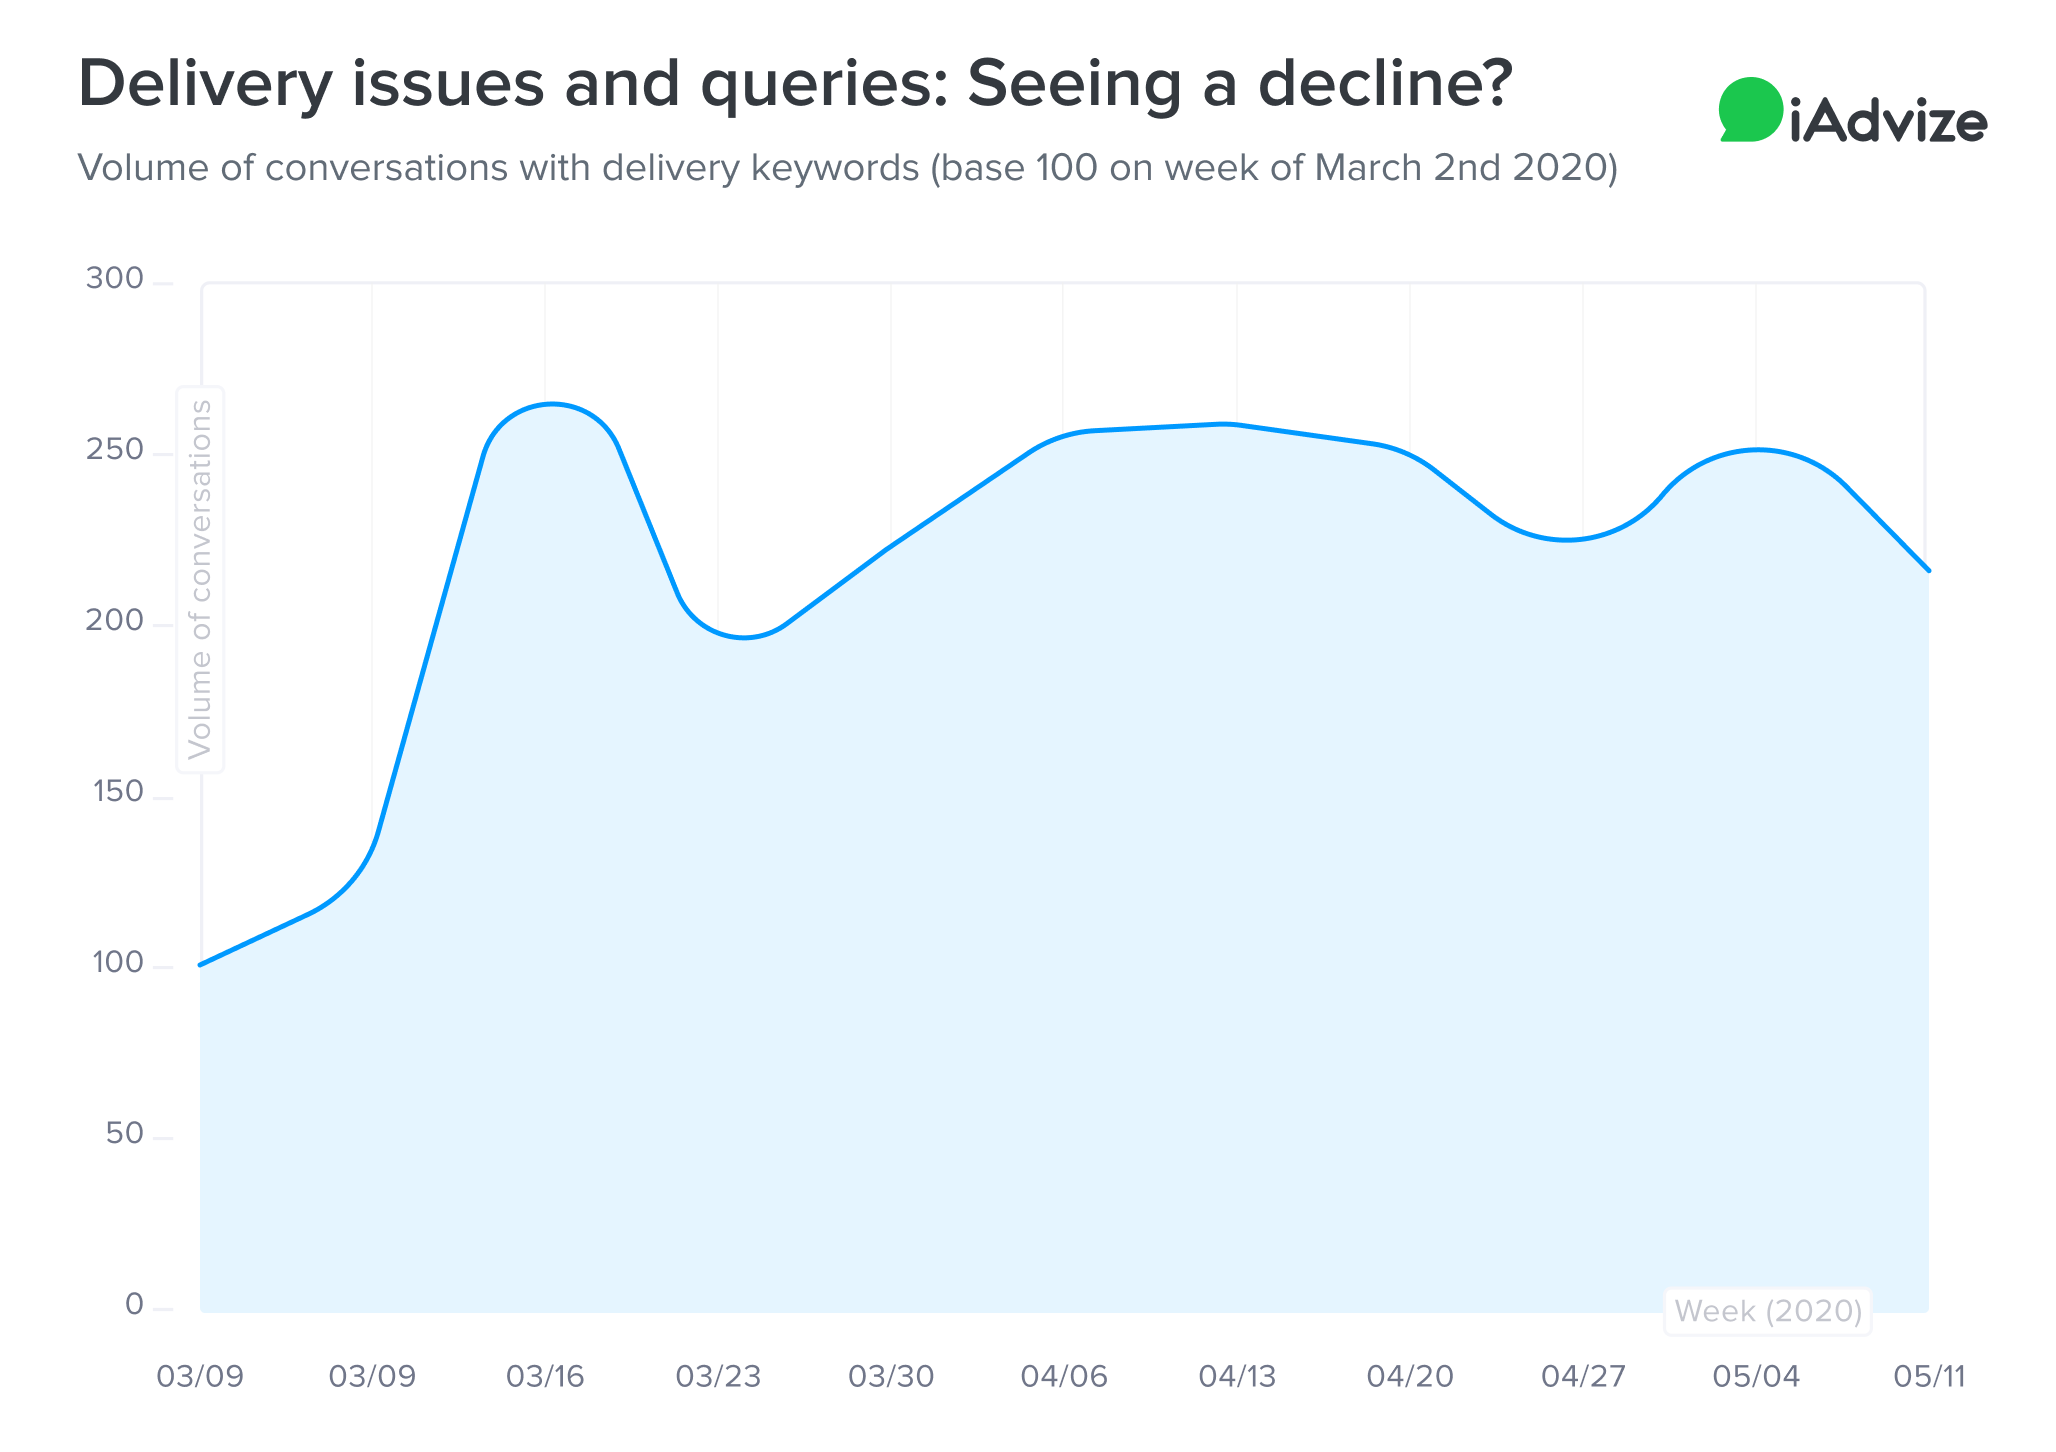 Delivery issues and queries decline